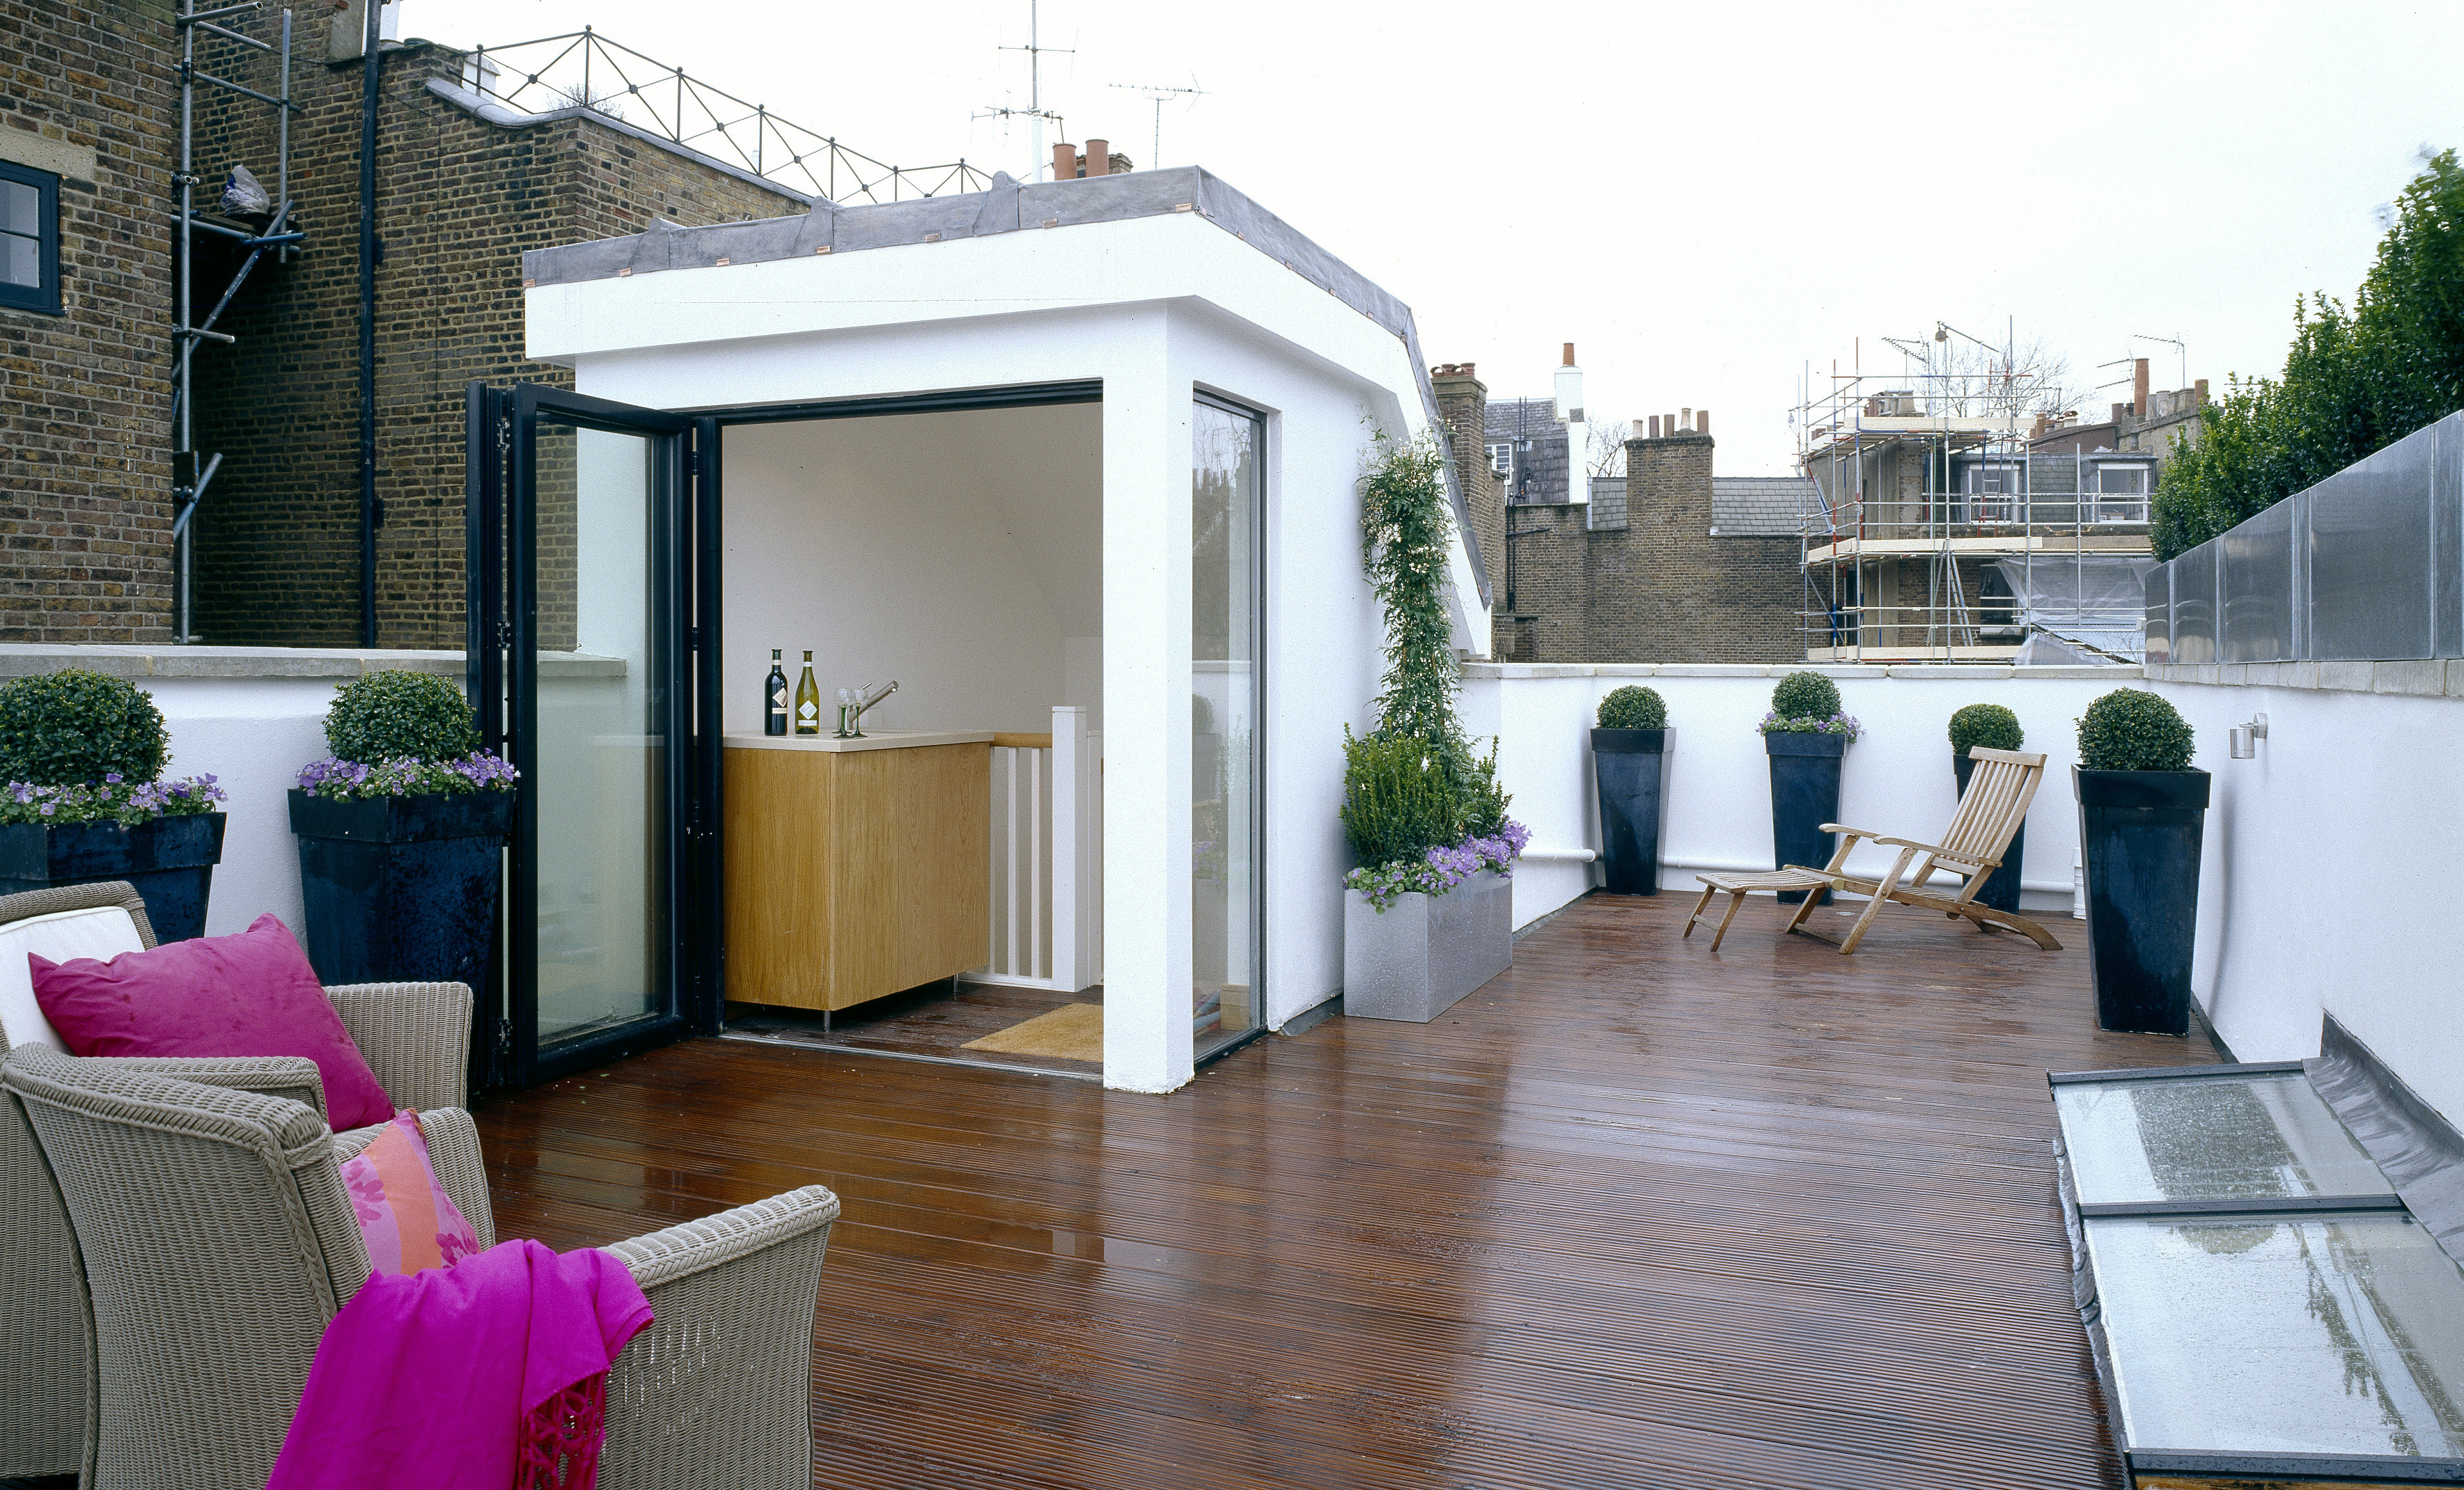 creativemass - roof terrace, decking, pink, roof lights, planters, minimal, bar